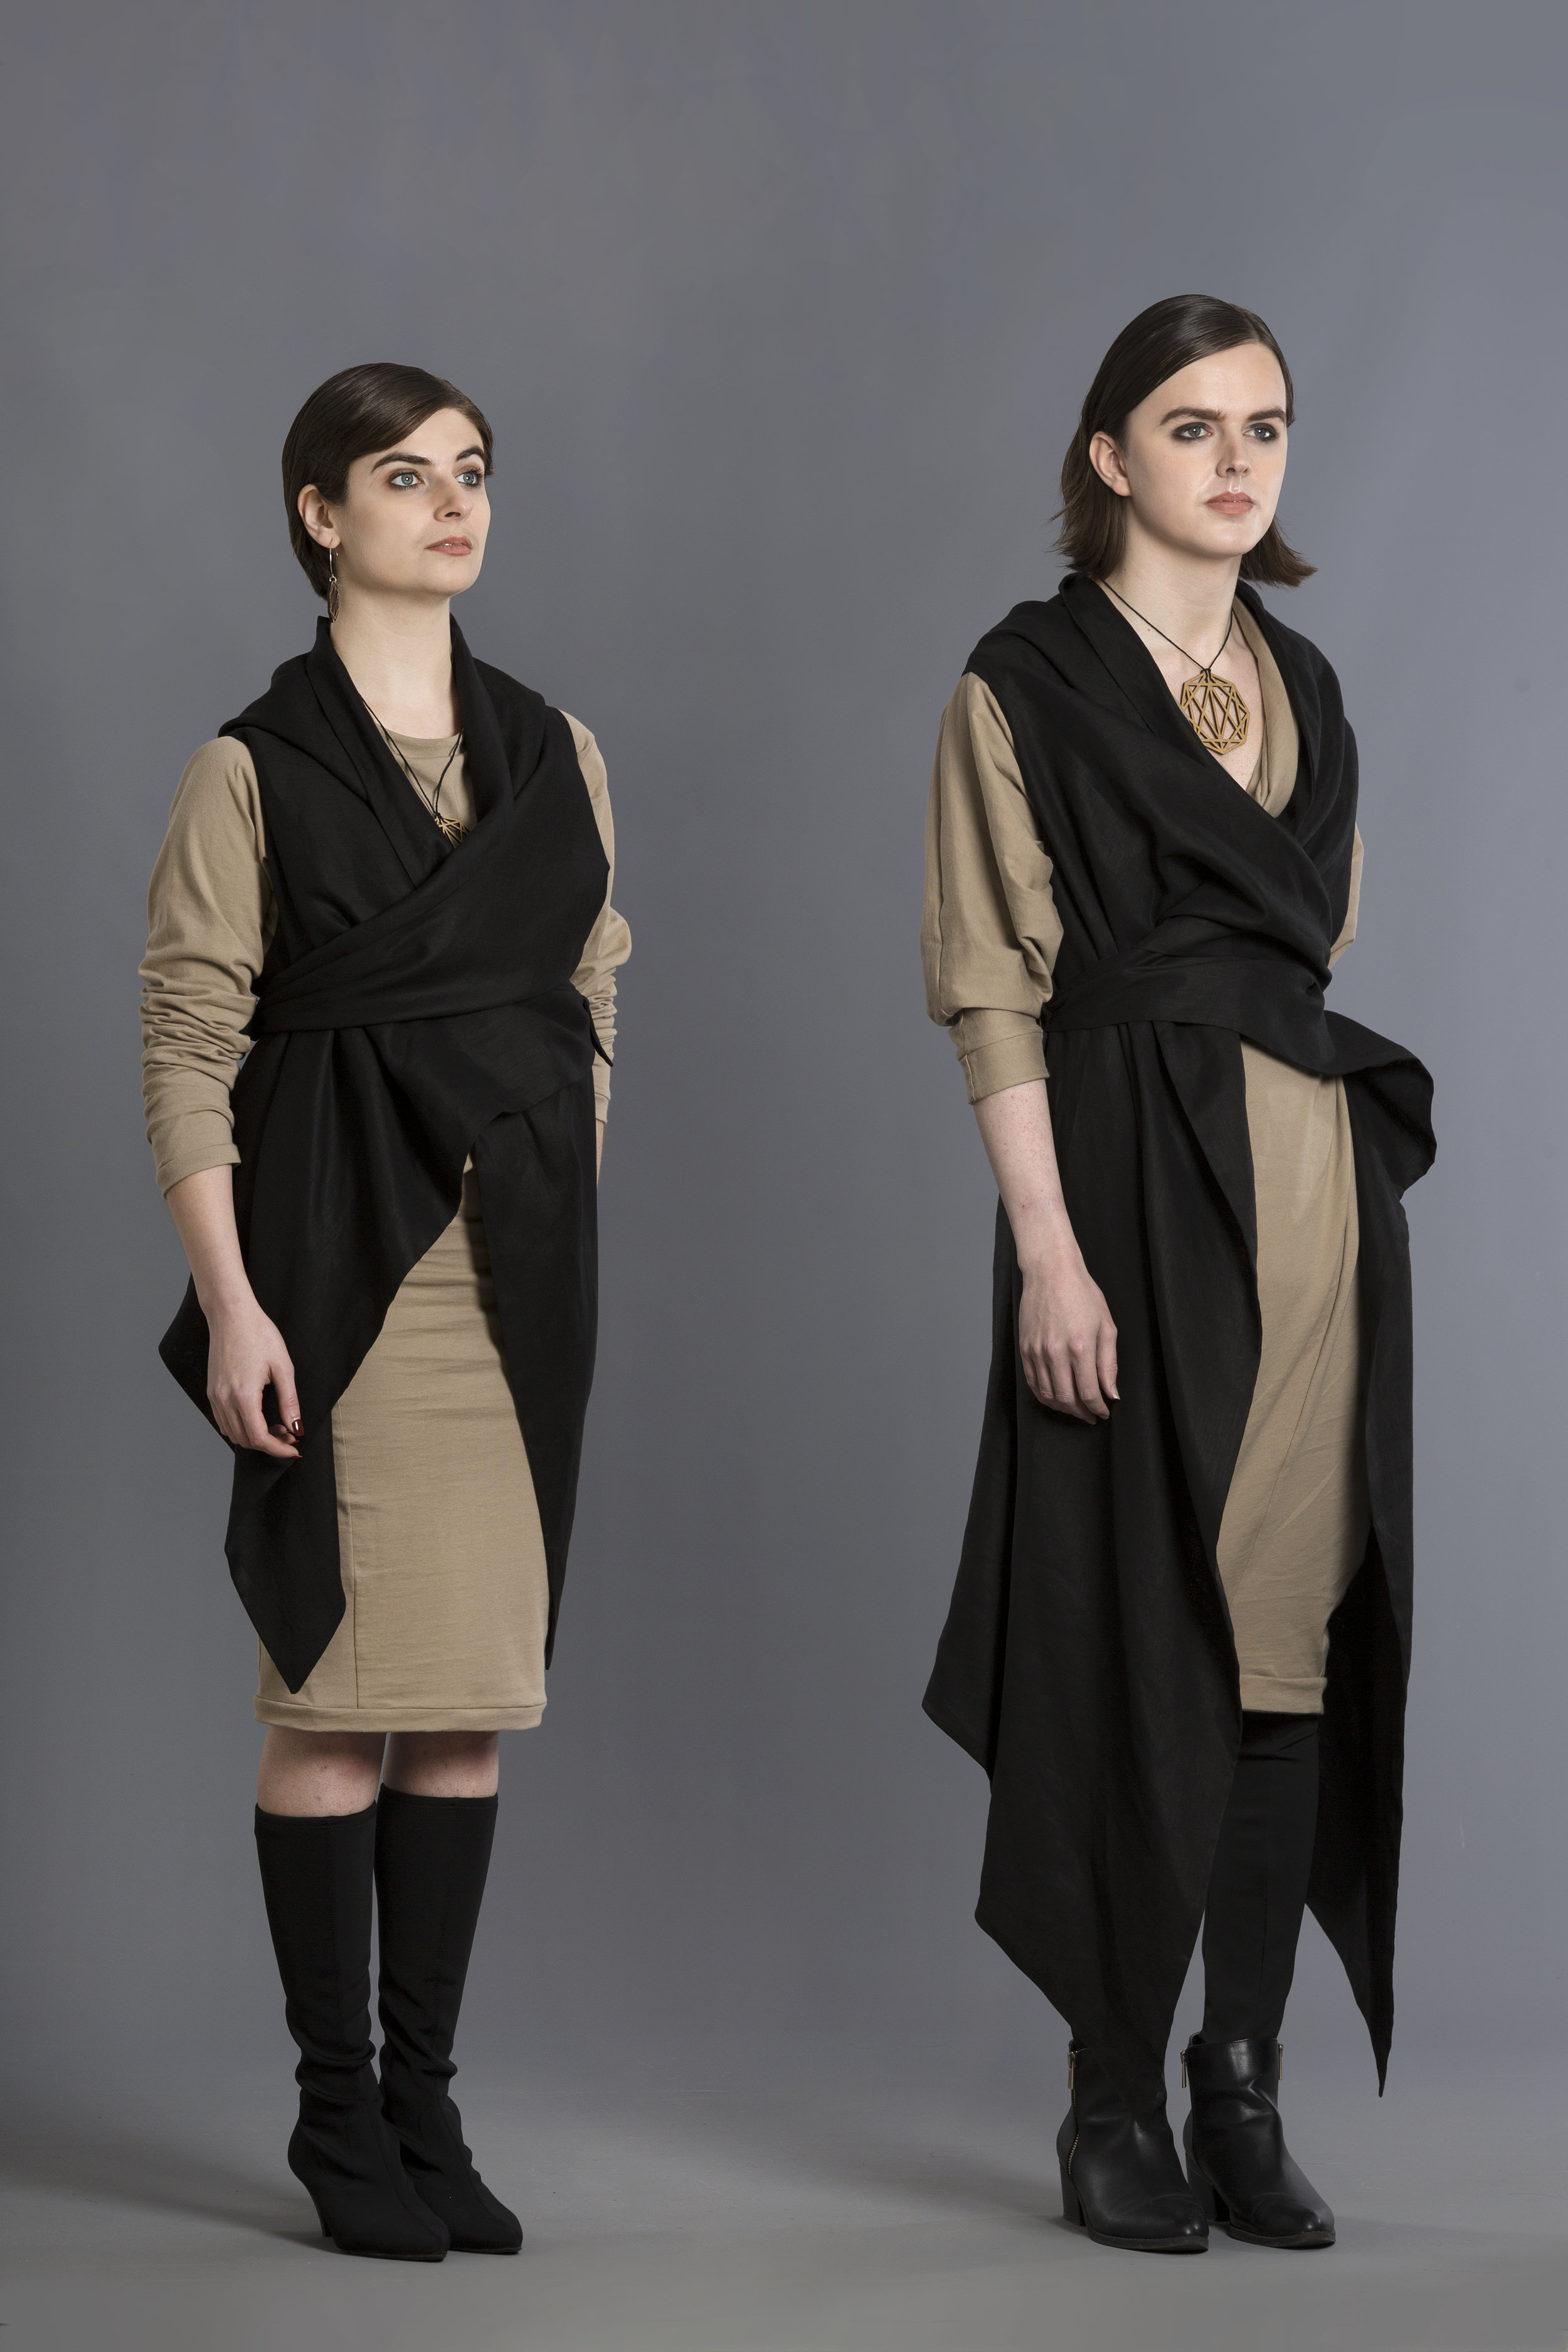 zaramia-ava-zaramiaava-leeds-fashion-designer-ethical-sustainable-black-jacket-drape-layers-dress-linen-unisex-genderless-abbeyhousemuseam-heshethey-top-latte-organic-5.jpg